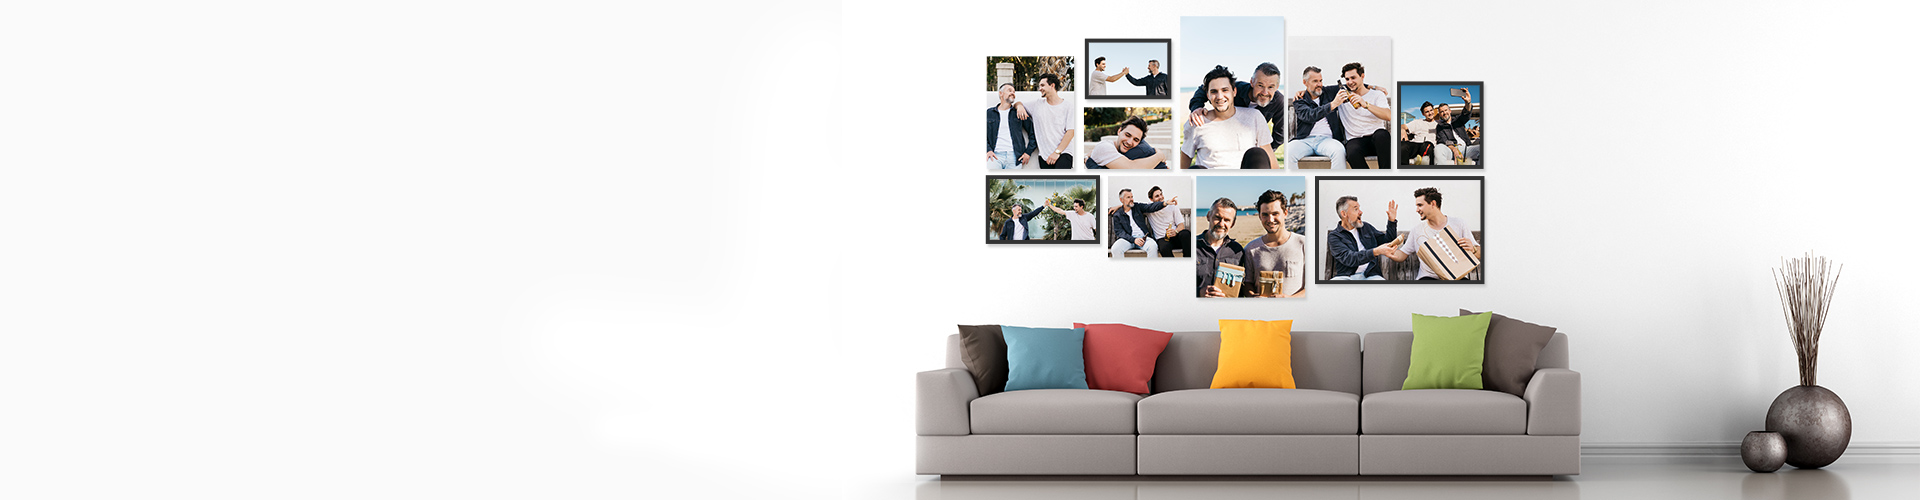 Personalized Father's Day Gifts